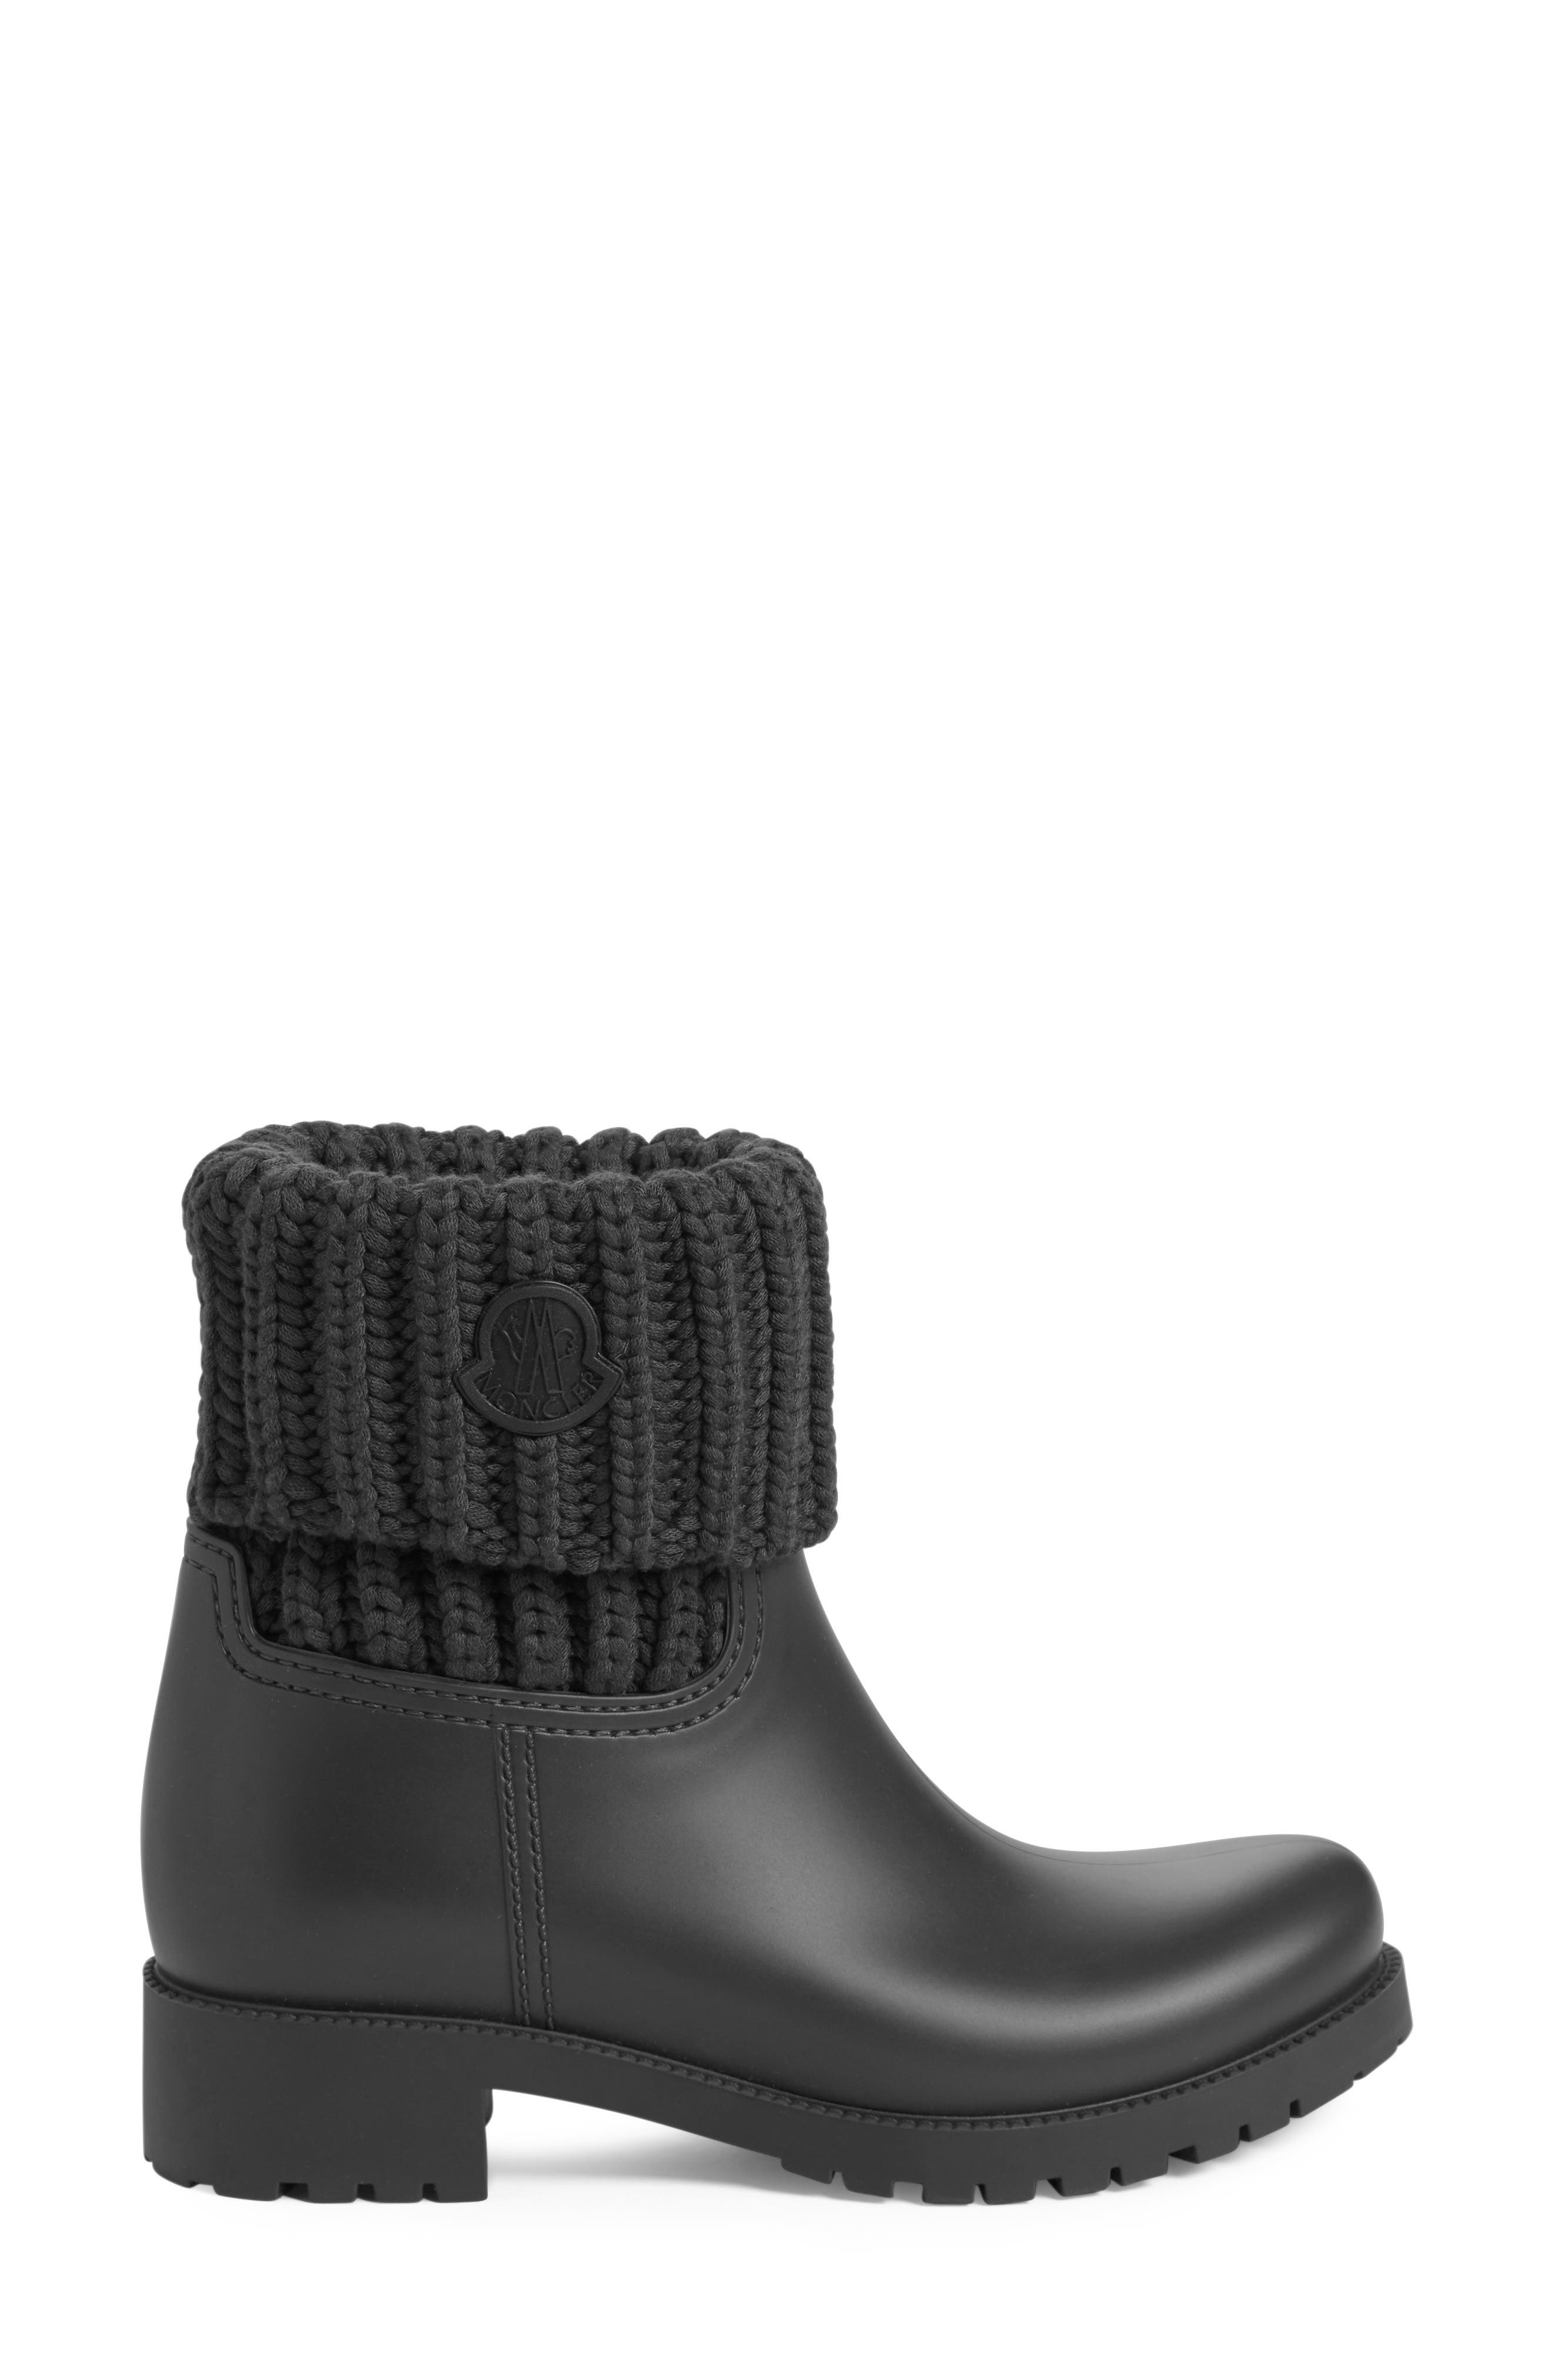 Ginette Knit Cuff Leather Rain Boot,                             Alternate thumbnail 3, color,                             002